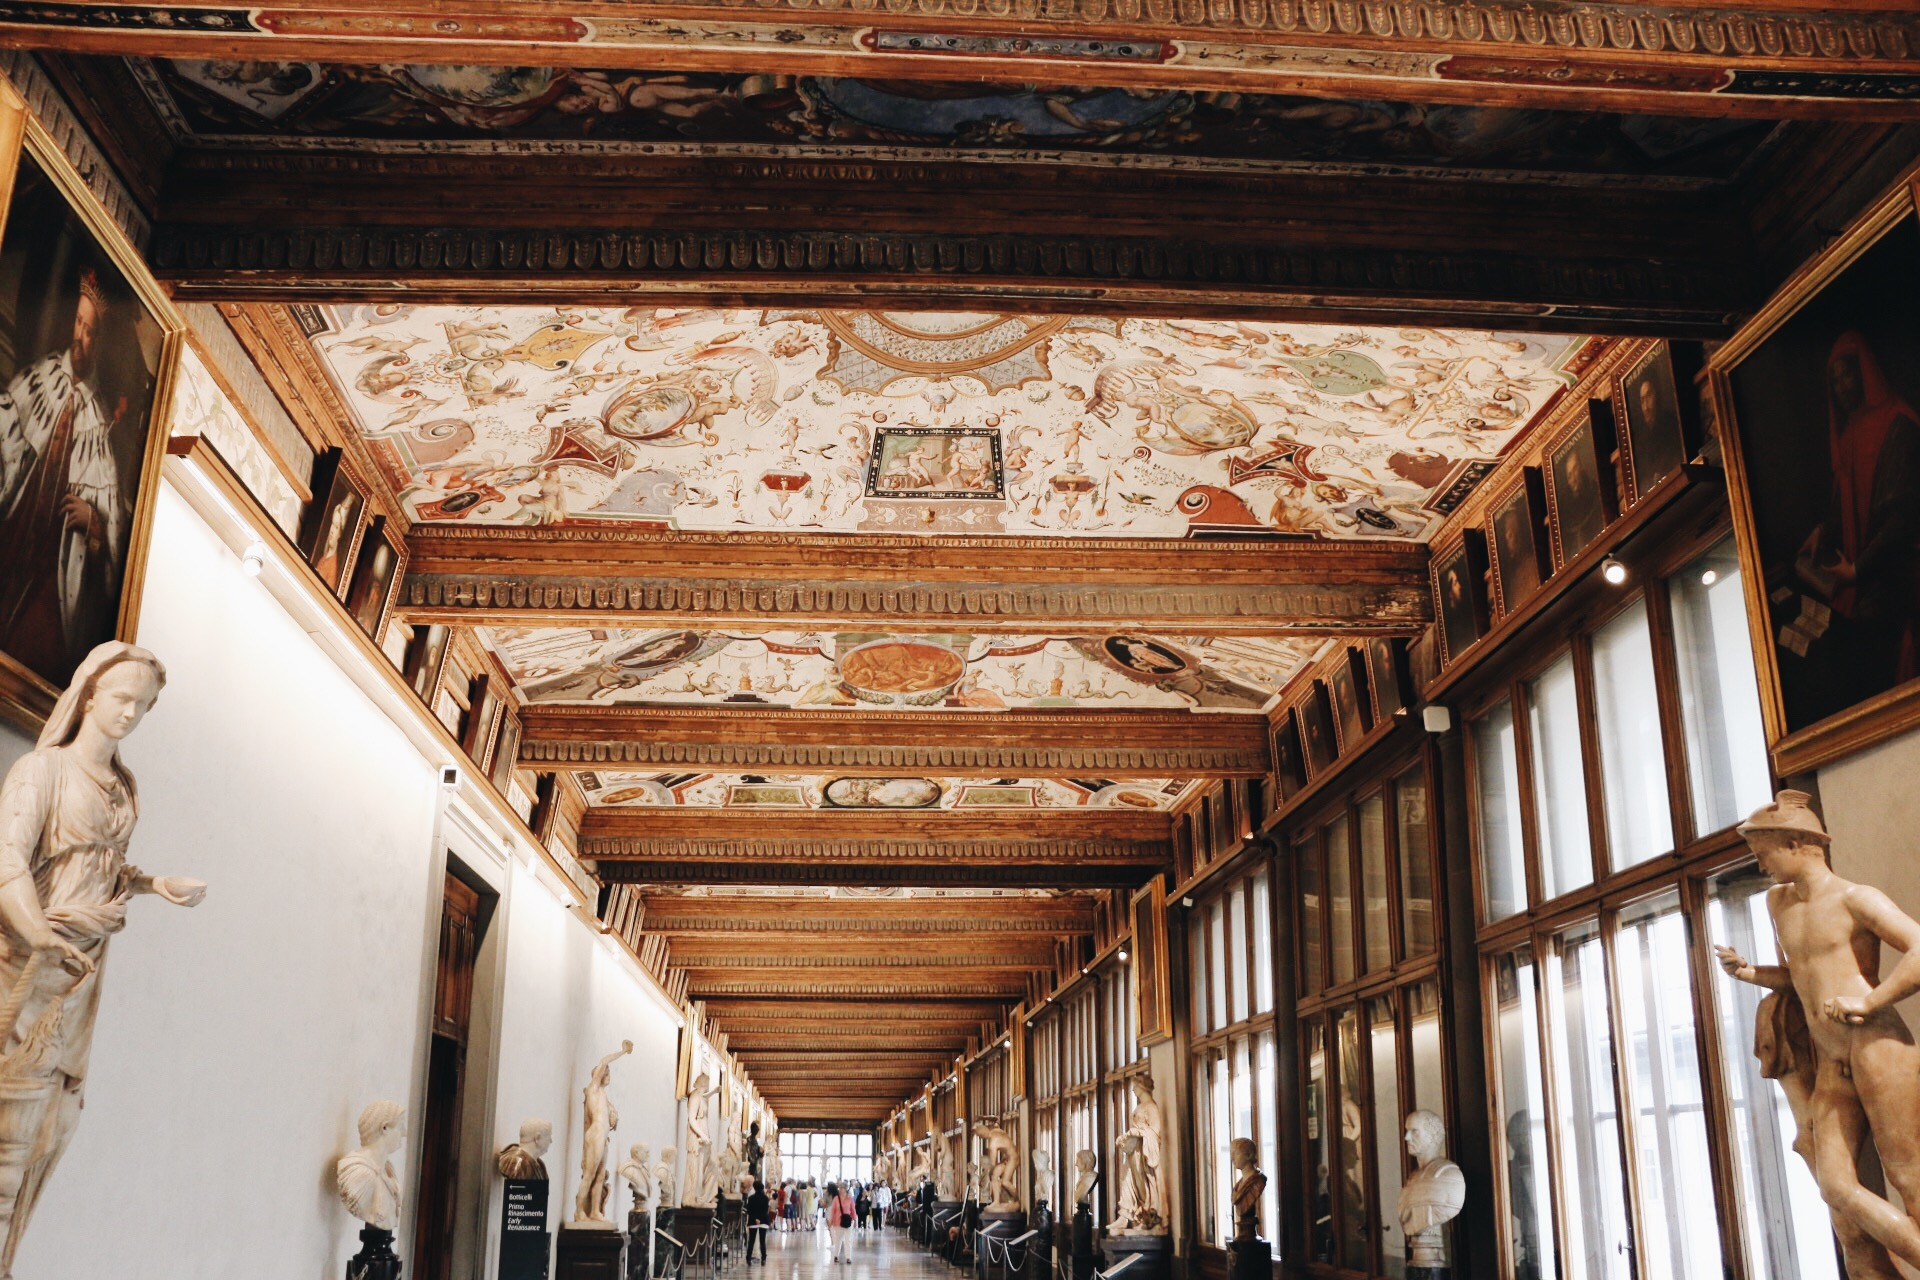 Kate's picture of the Uffizi Gallery Museum